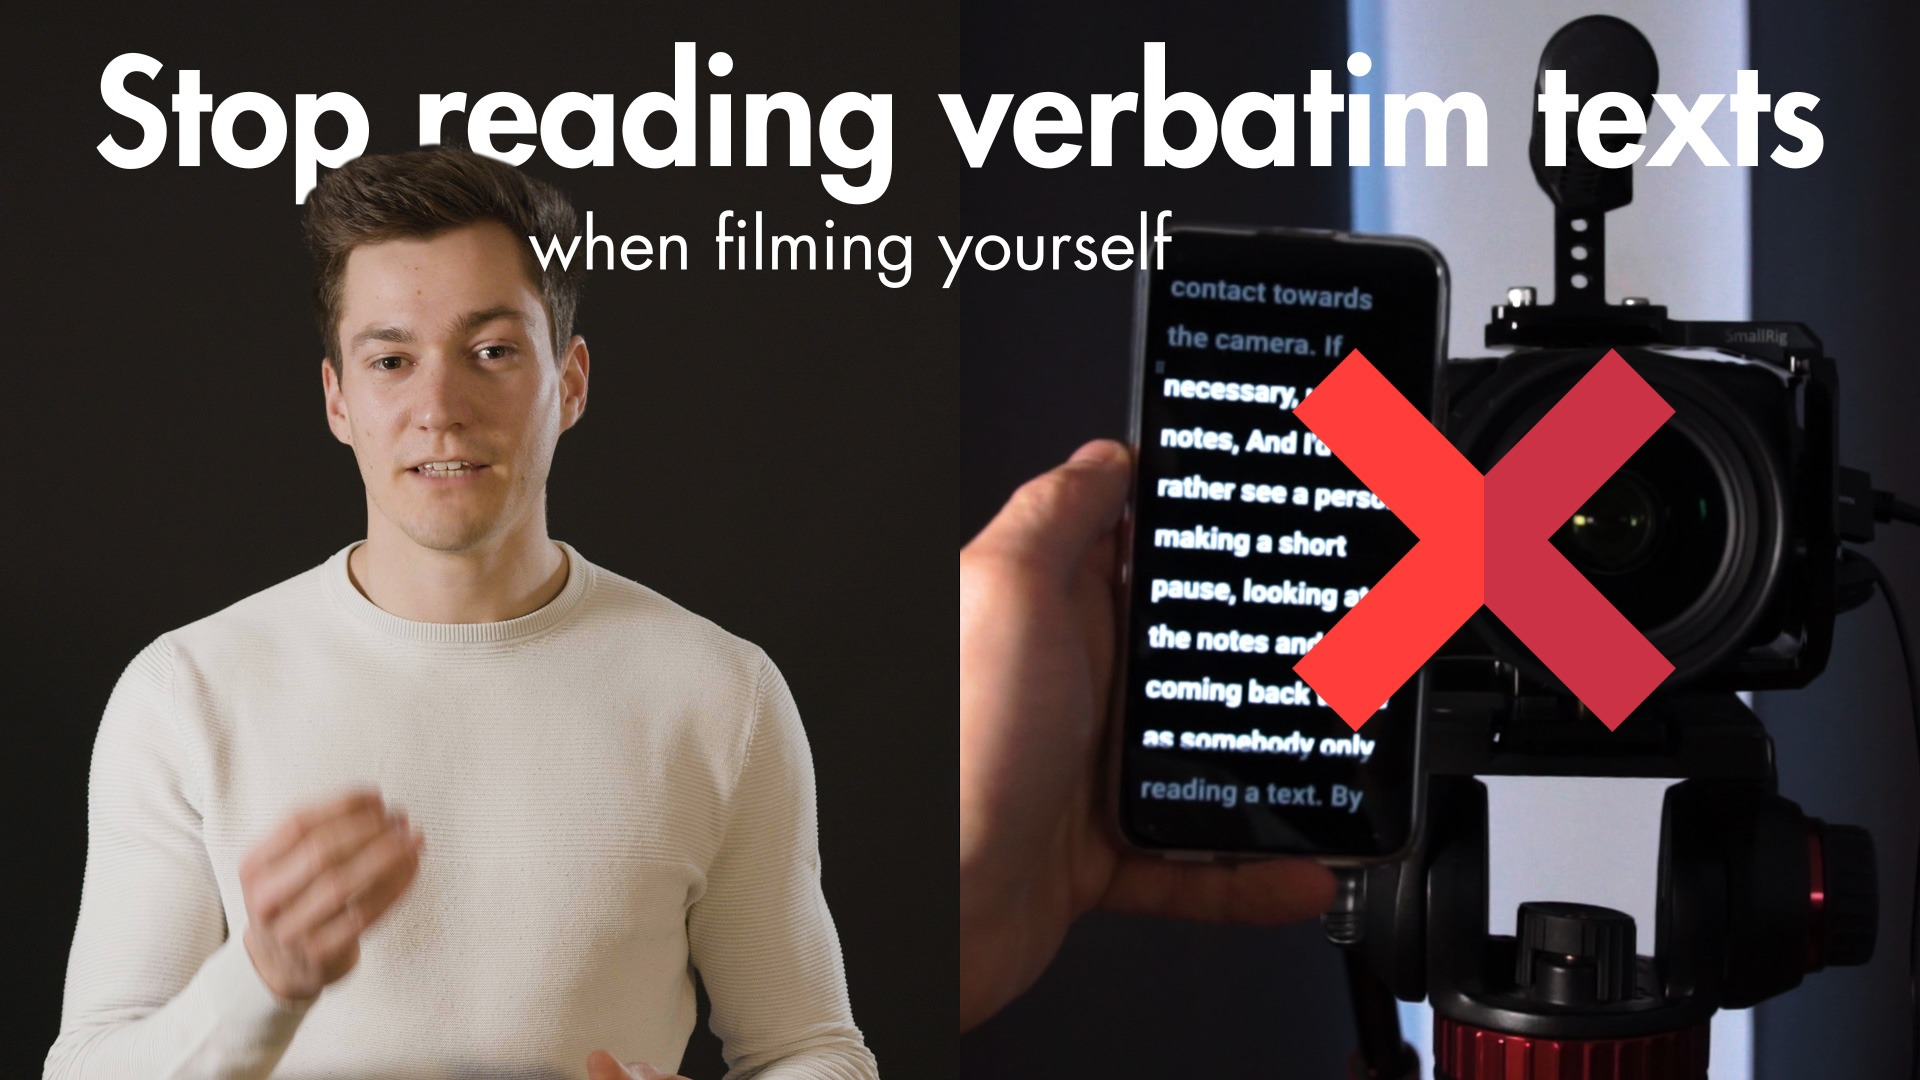 Filming yourself - Stop reading verbatim Texts